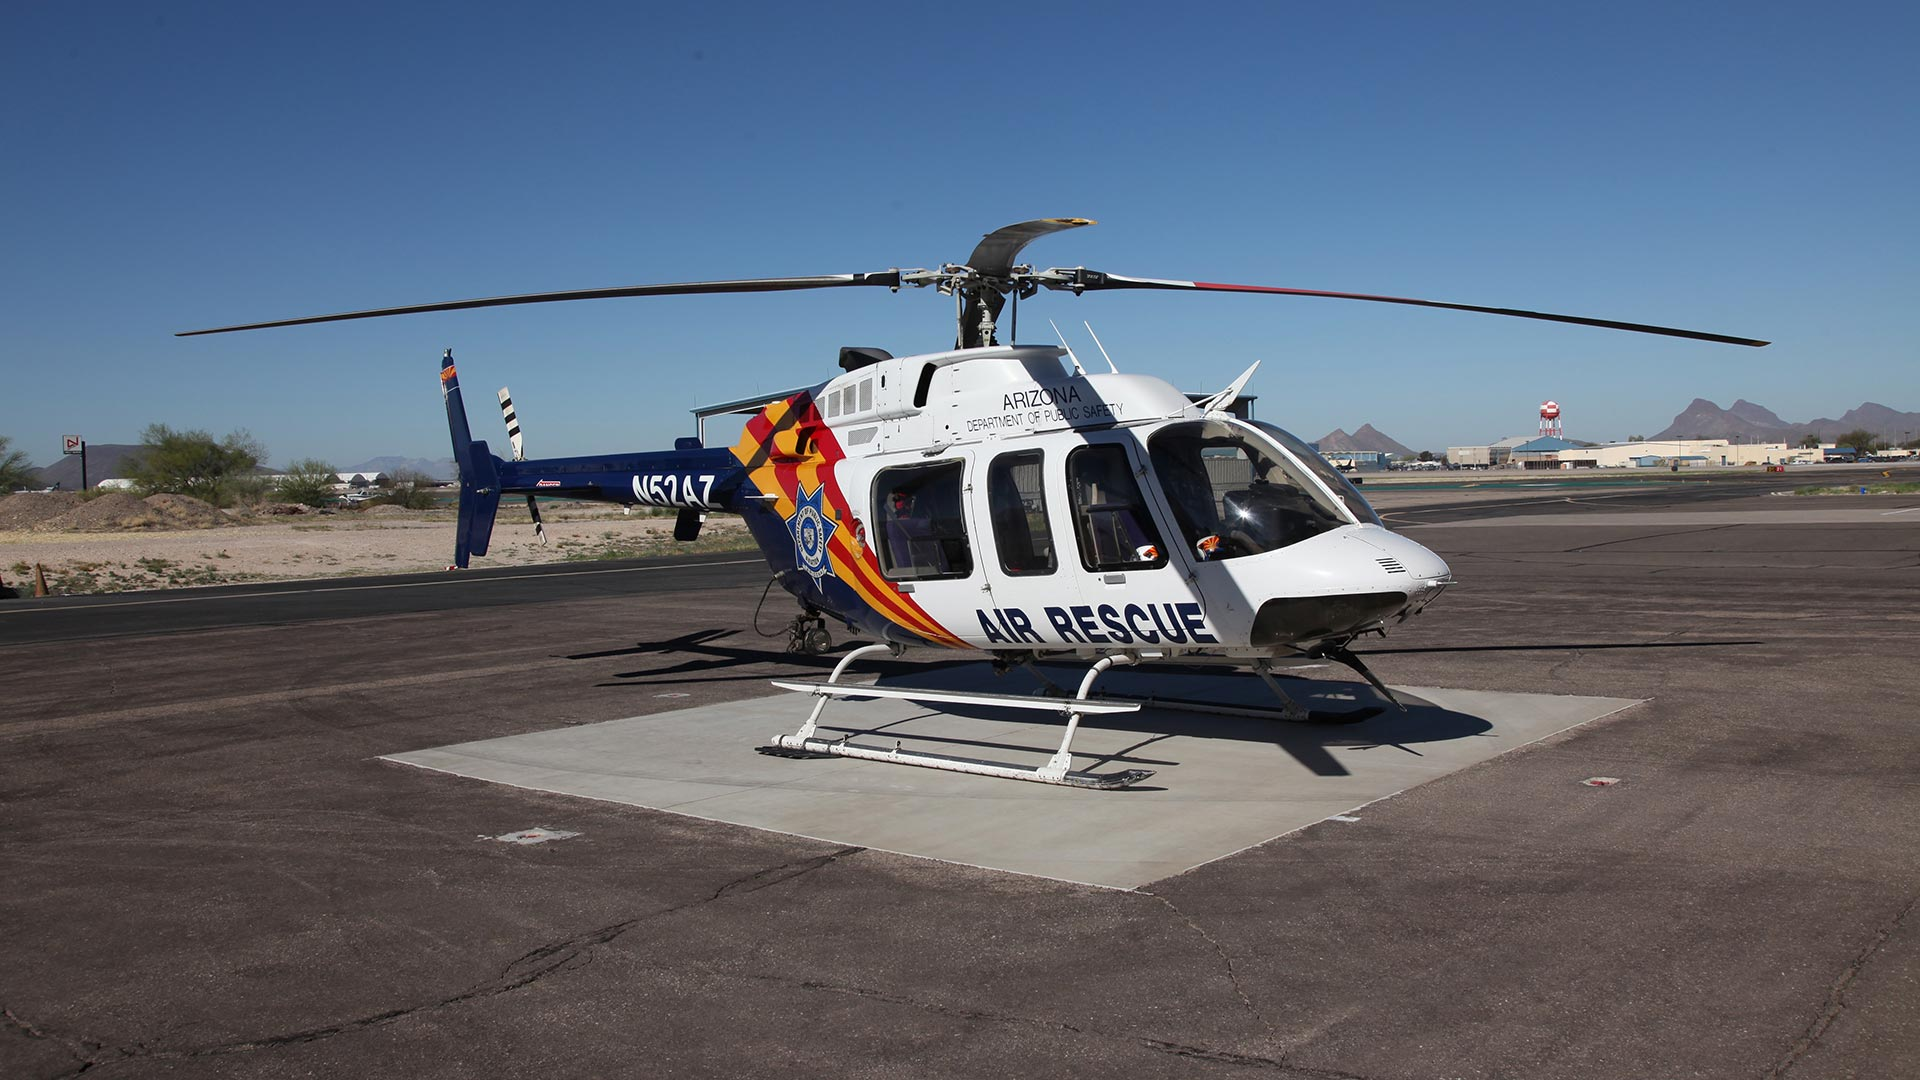 One of two Arizona Department of Public Service Helicopters stationed in Tucson.